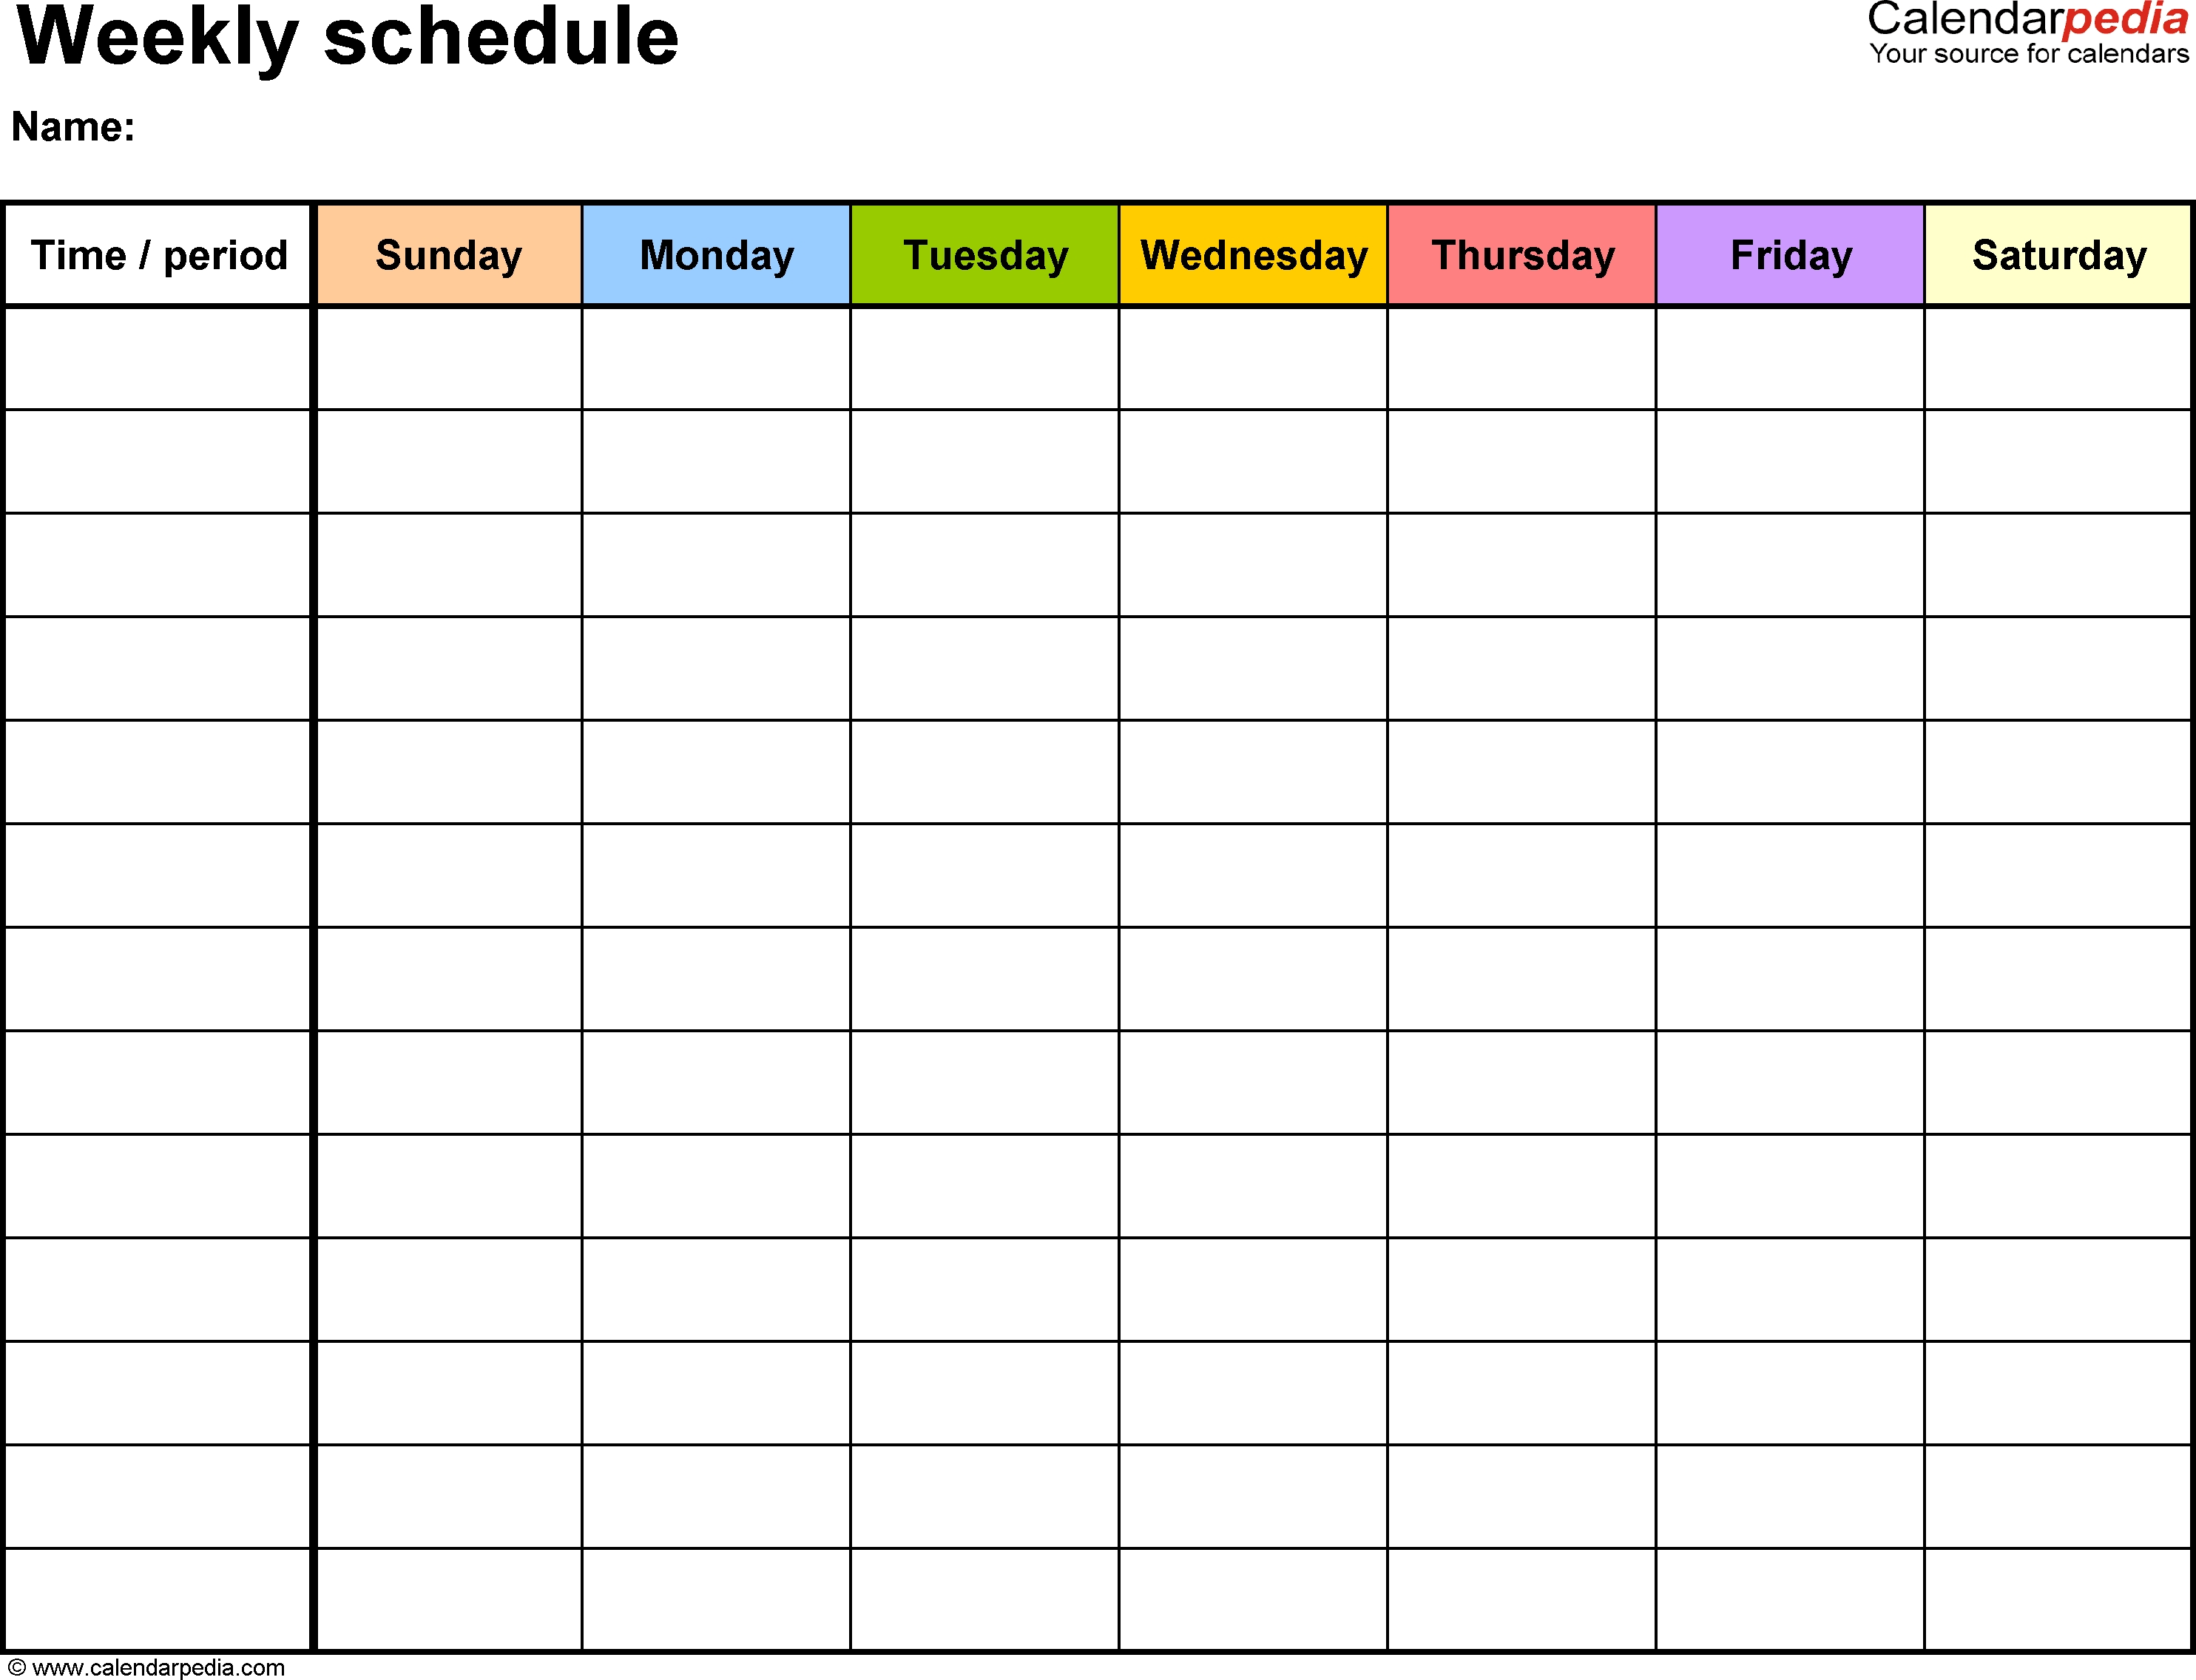 Weekly Schedule Template For Word Version 13: Landscape, 1 Page inside Homework Agenda Template 7Th Grade